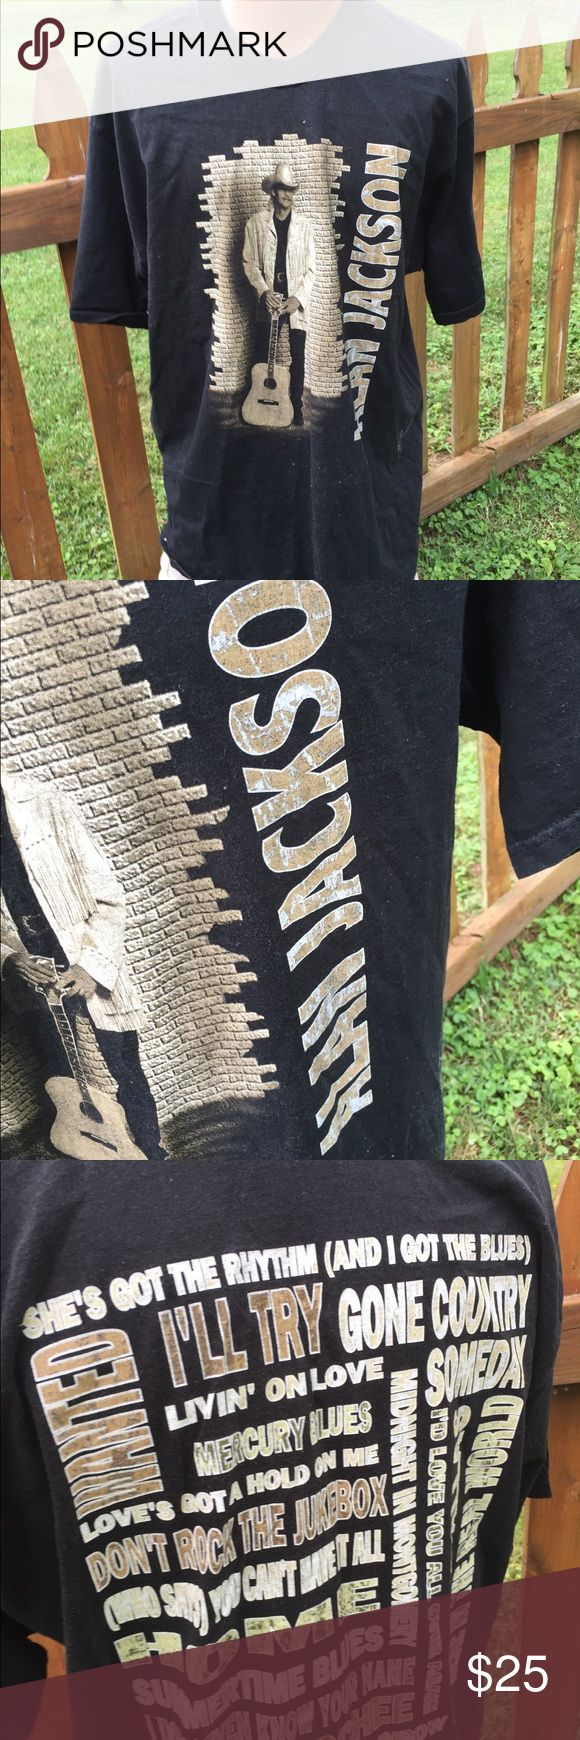 Vintage Alan Jackson Concert Tour Mens Shirt XL Size XL. Awesome vintage shirt. Be sure to view the other items in our closet. We offer  women's, Mens and kids items in a variety of sizes. Bundle and save!! We love reasonable offers!! Thank you for viewing our item!! Fruit of the Loom Shirts Tees - Short Sleeve